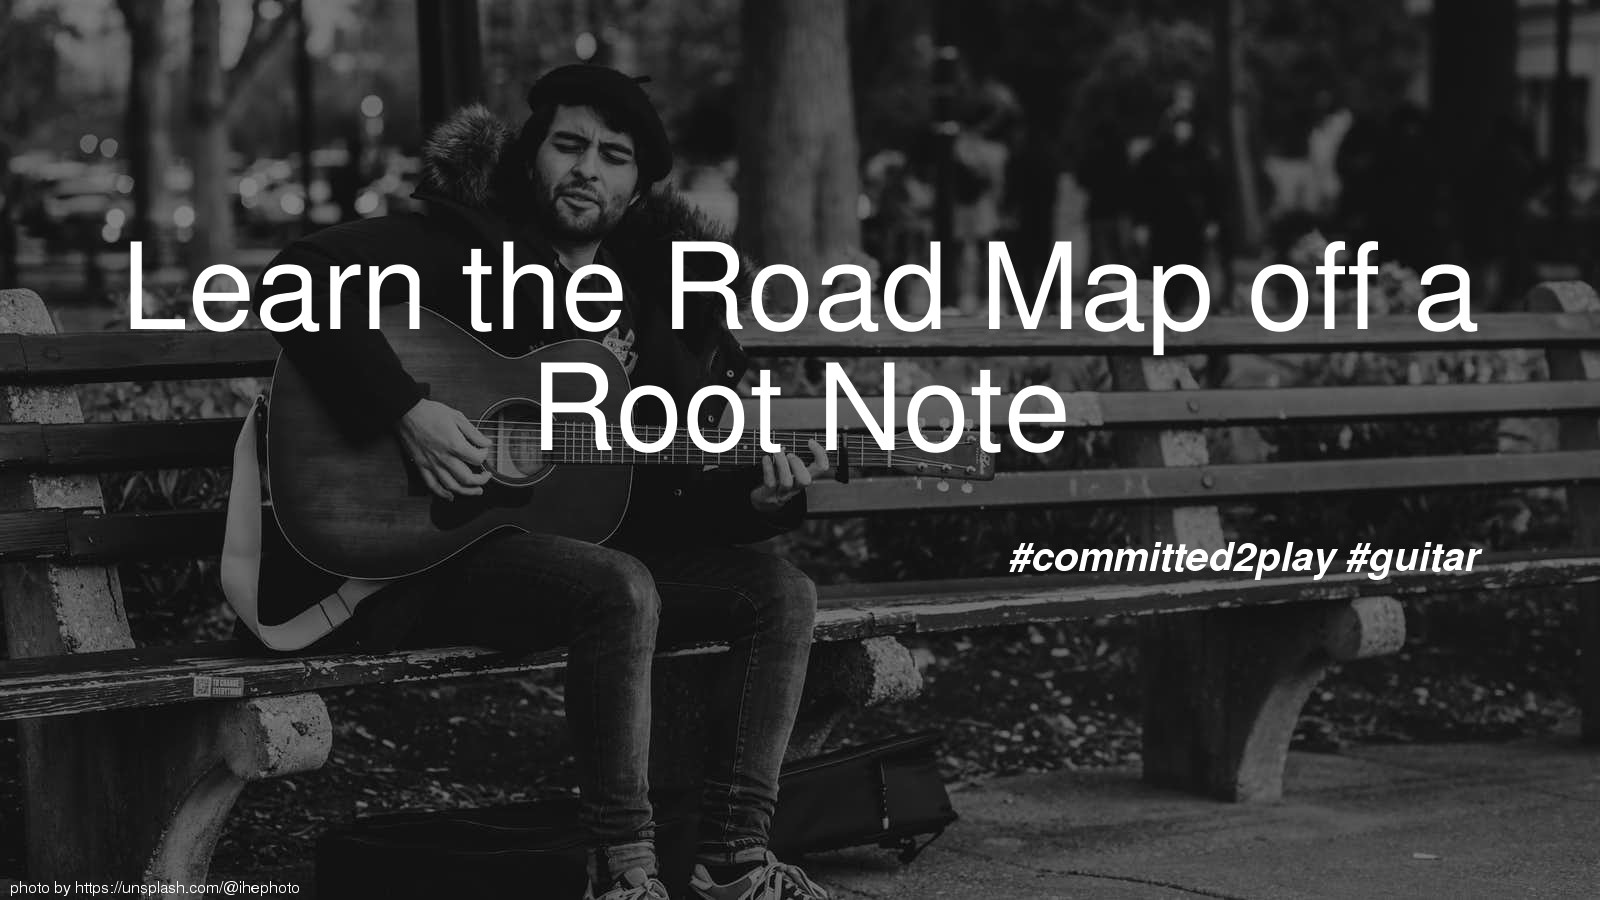 Learn the Road Map off a Root Note